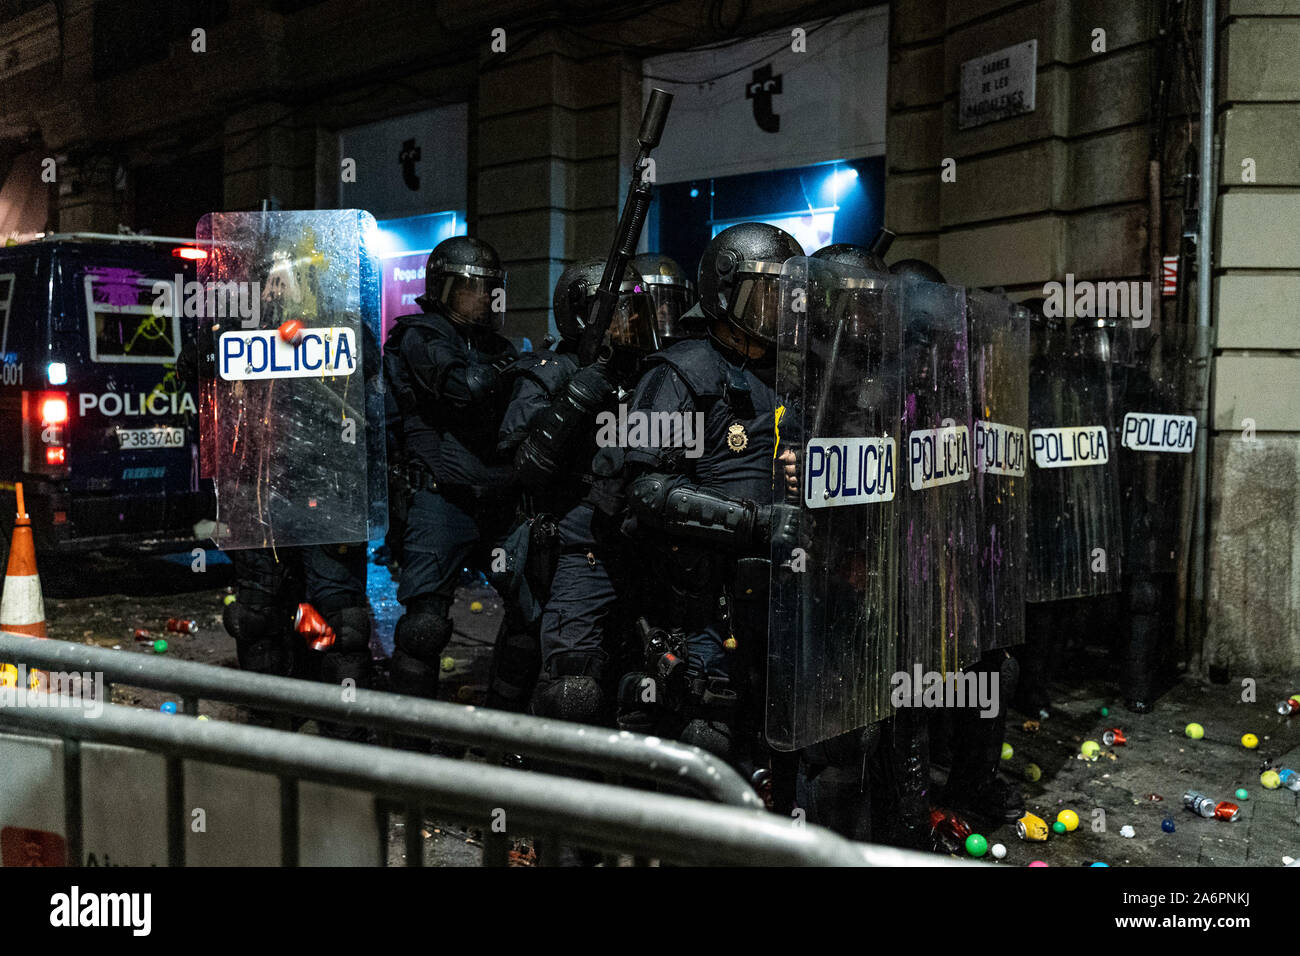 Barcelona, Spain. 26th Oct, 2019. Policemen stand in line to push back protesters near the headquarters of the Spanish National Police force in Barcelona, Spain, on Oct. 26, 2019. Credit: Joan Gosa/Xinhua/Alamy Live News Stock Photo